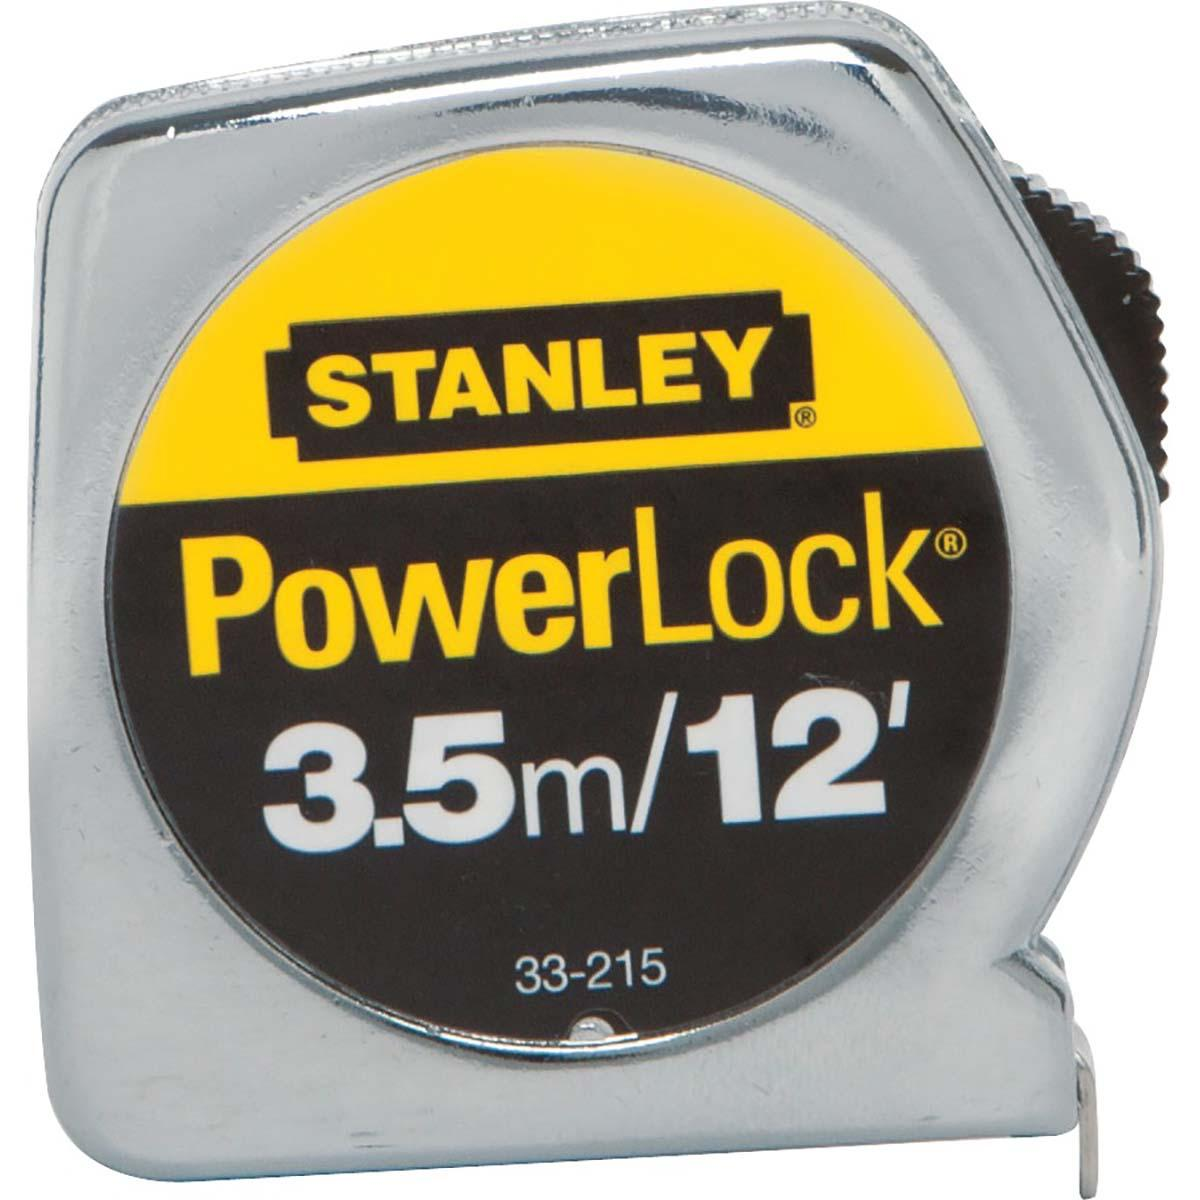 "STANLEY® POWERLOCK® TAPE RULE W/ METAL CASE 1/2"" X 3.5M/12'"